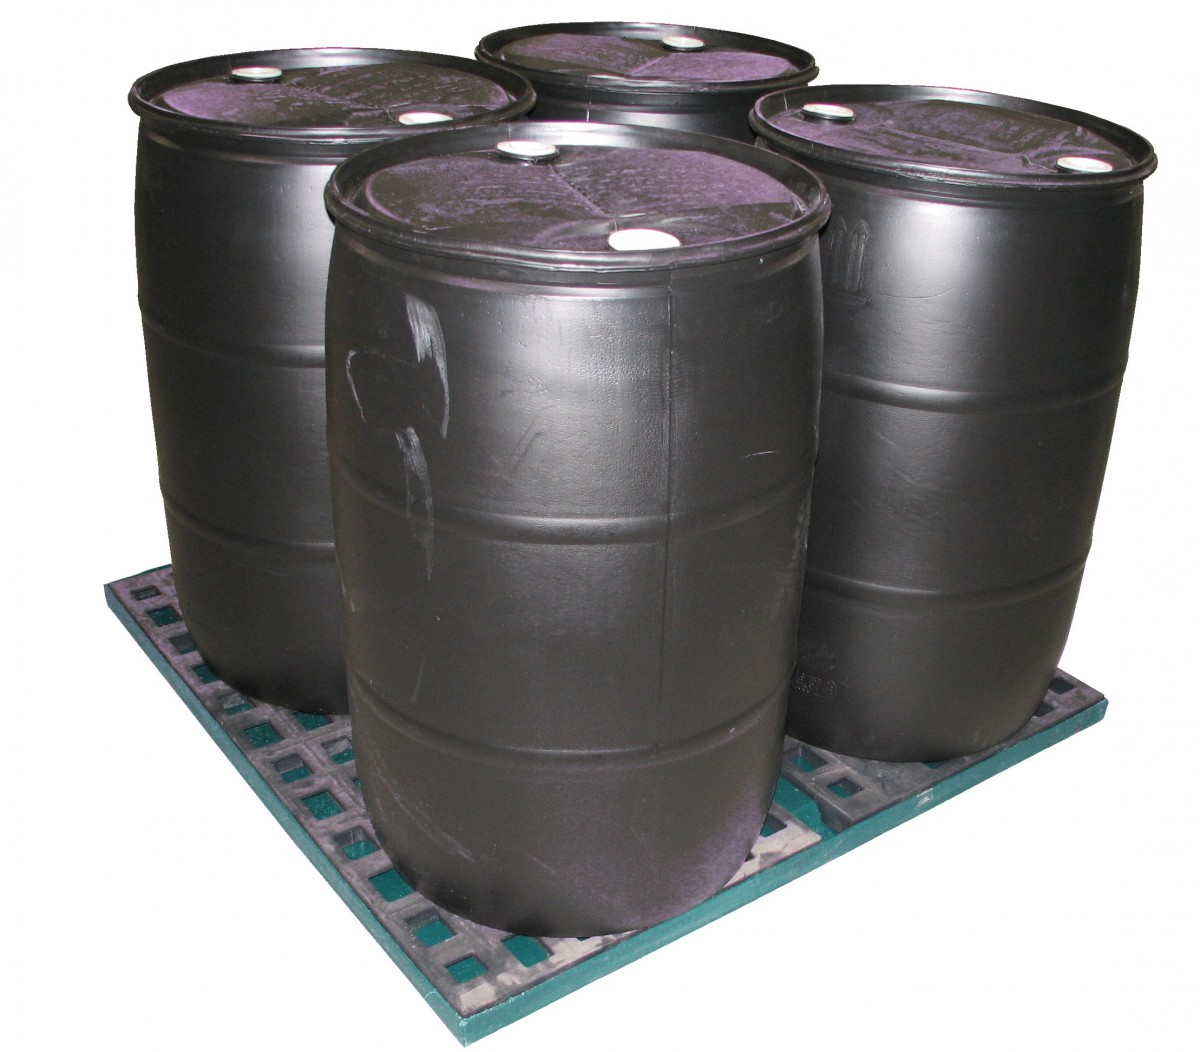 Drum Storage And Drum Spill Containment